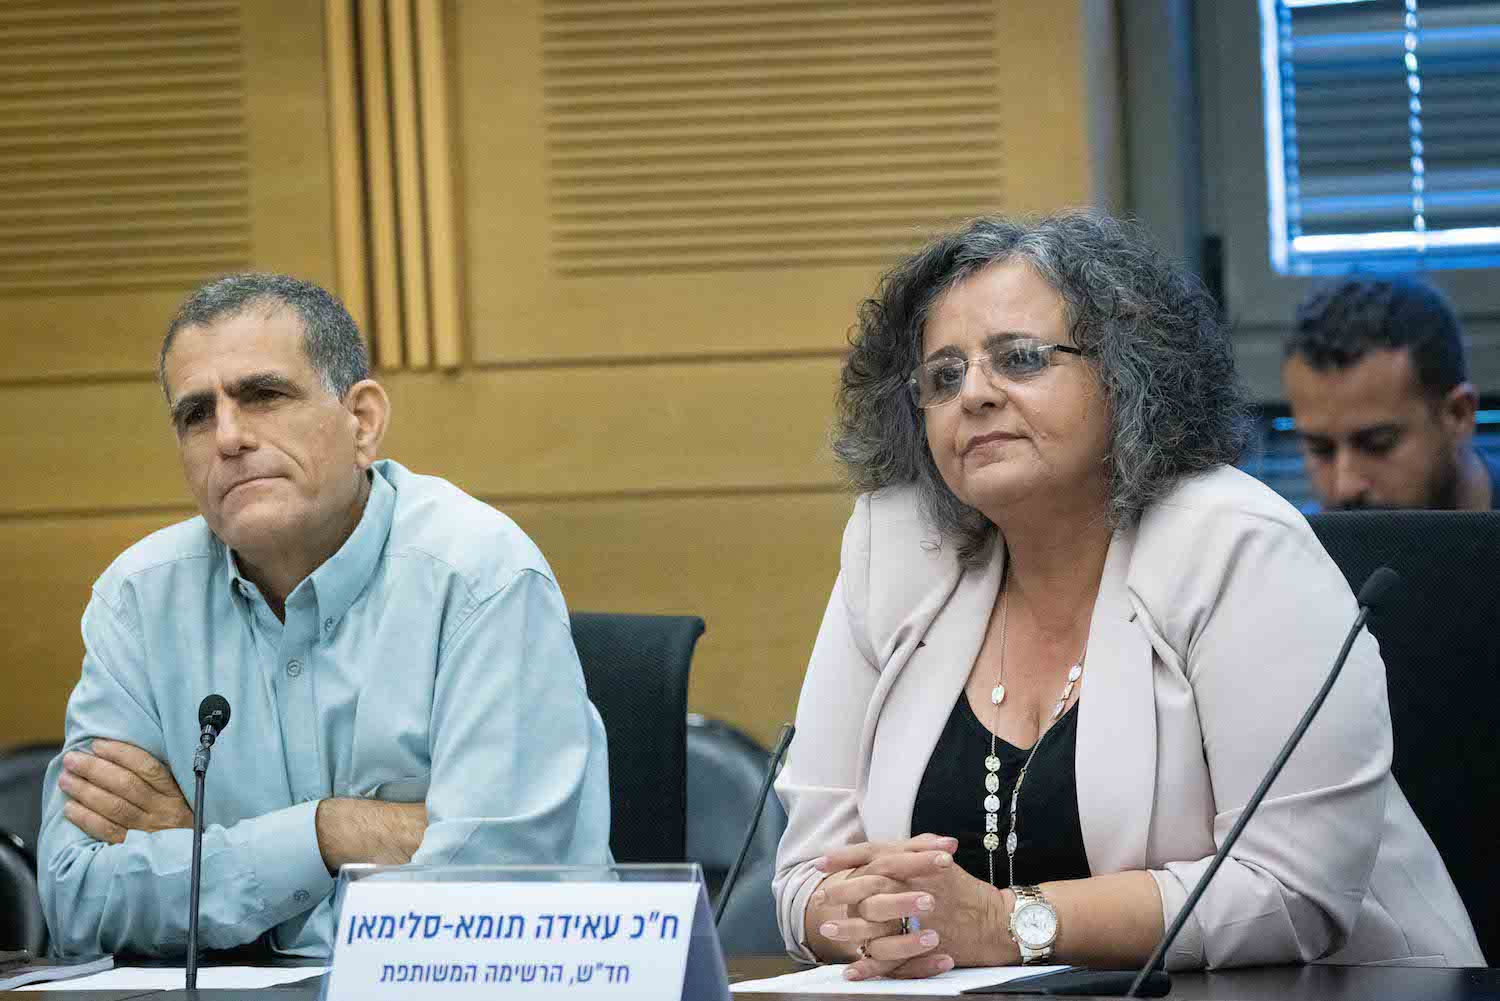 """Members of Mossi Raz (left) and Aida Touma-Suleiman (right) attend an event titled """"Between Occupation and Apartheid"""" in the Knesset, June 22, 2021. (Yonatan Sindel/Flash90)"""